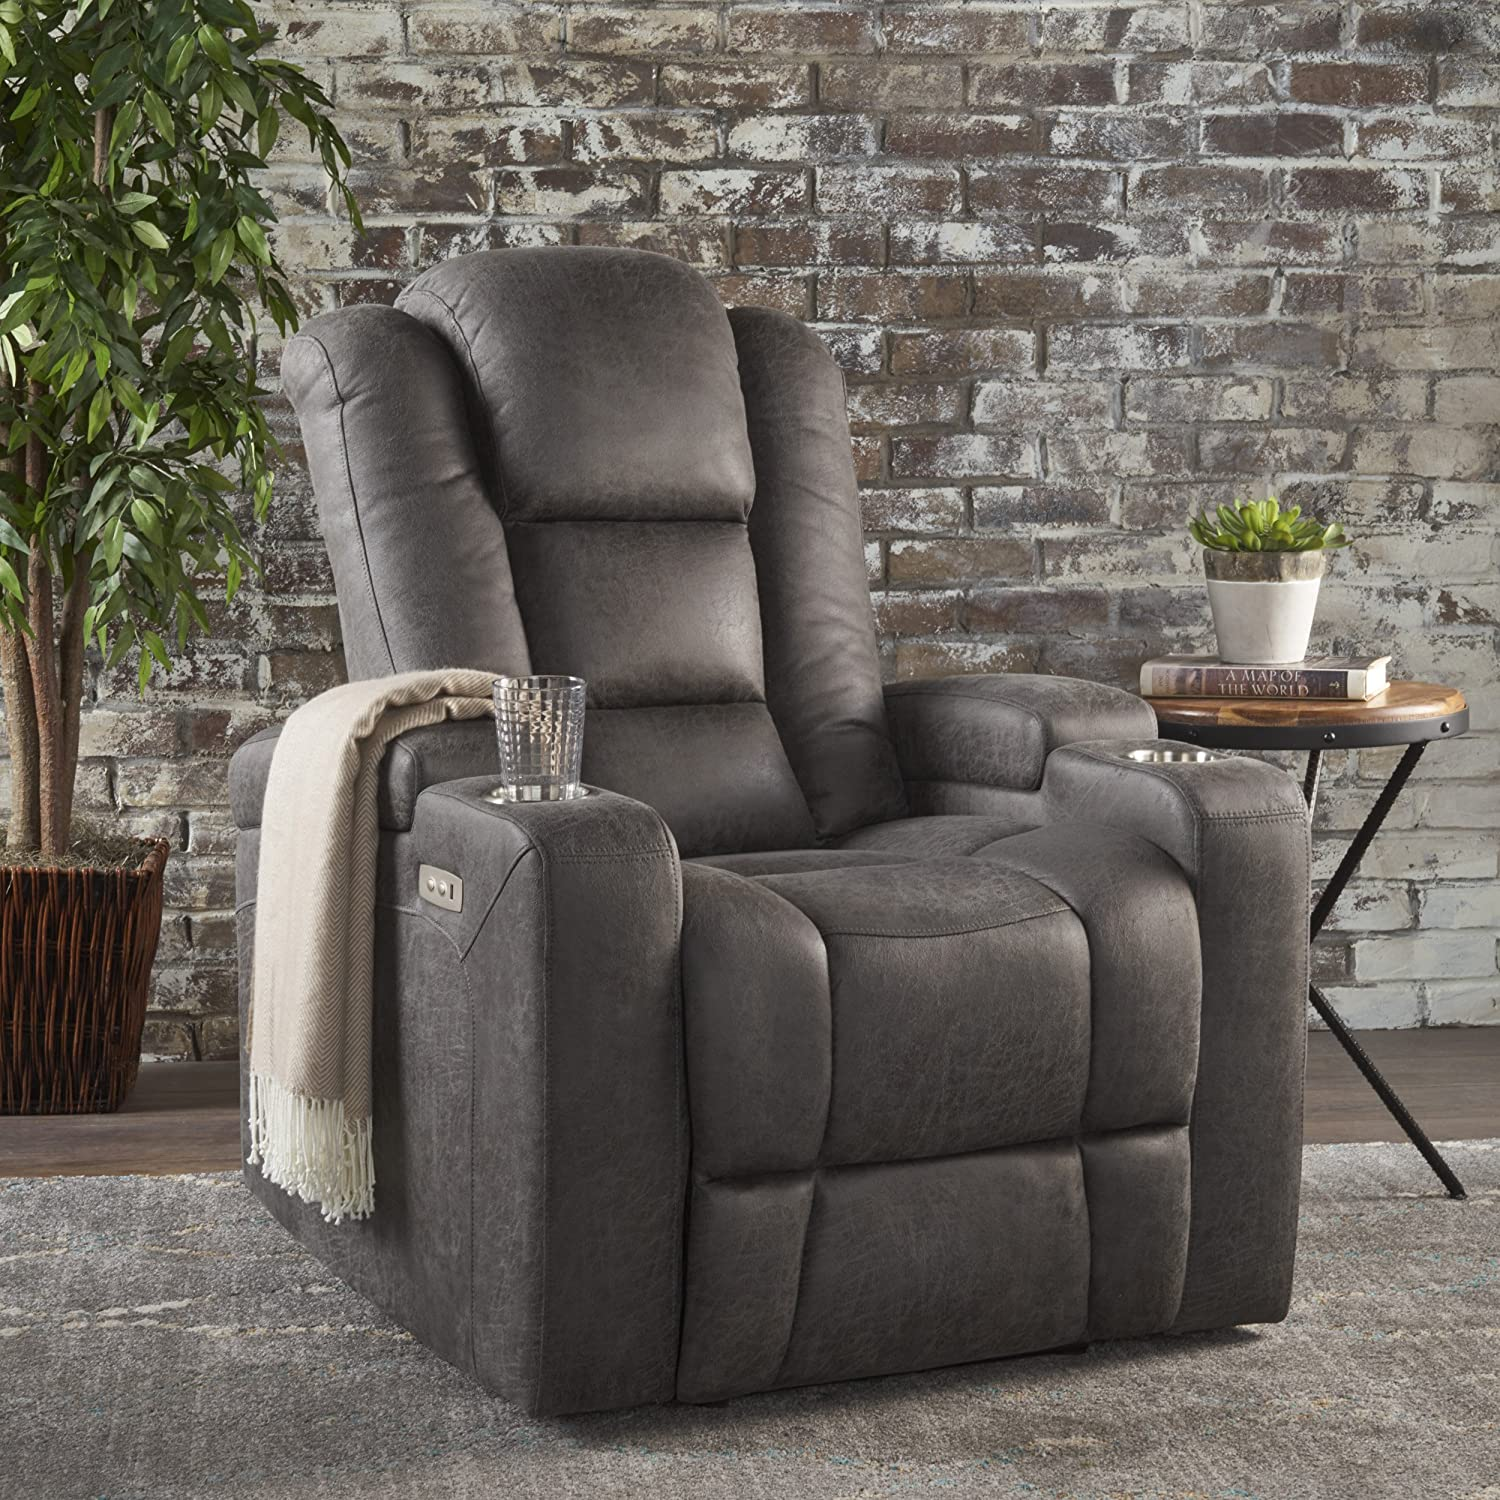 Christopher Knight Home Emersyn Tufted Microfiber Power Recliner with Arm Storage and USB Cord, Slate Black